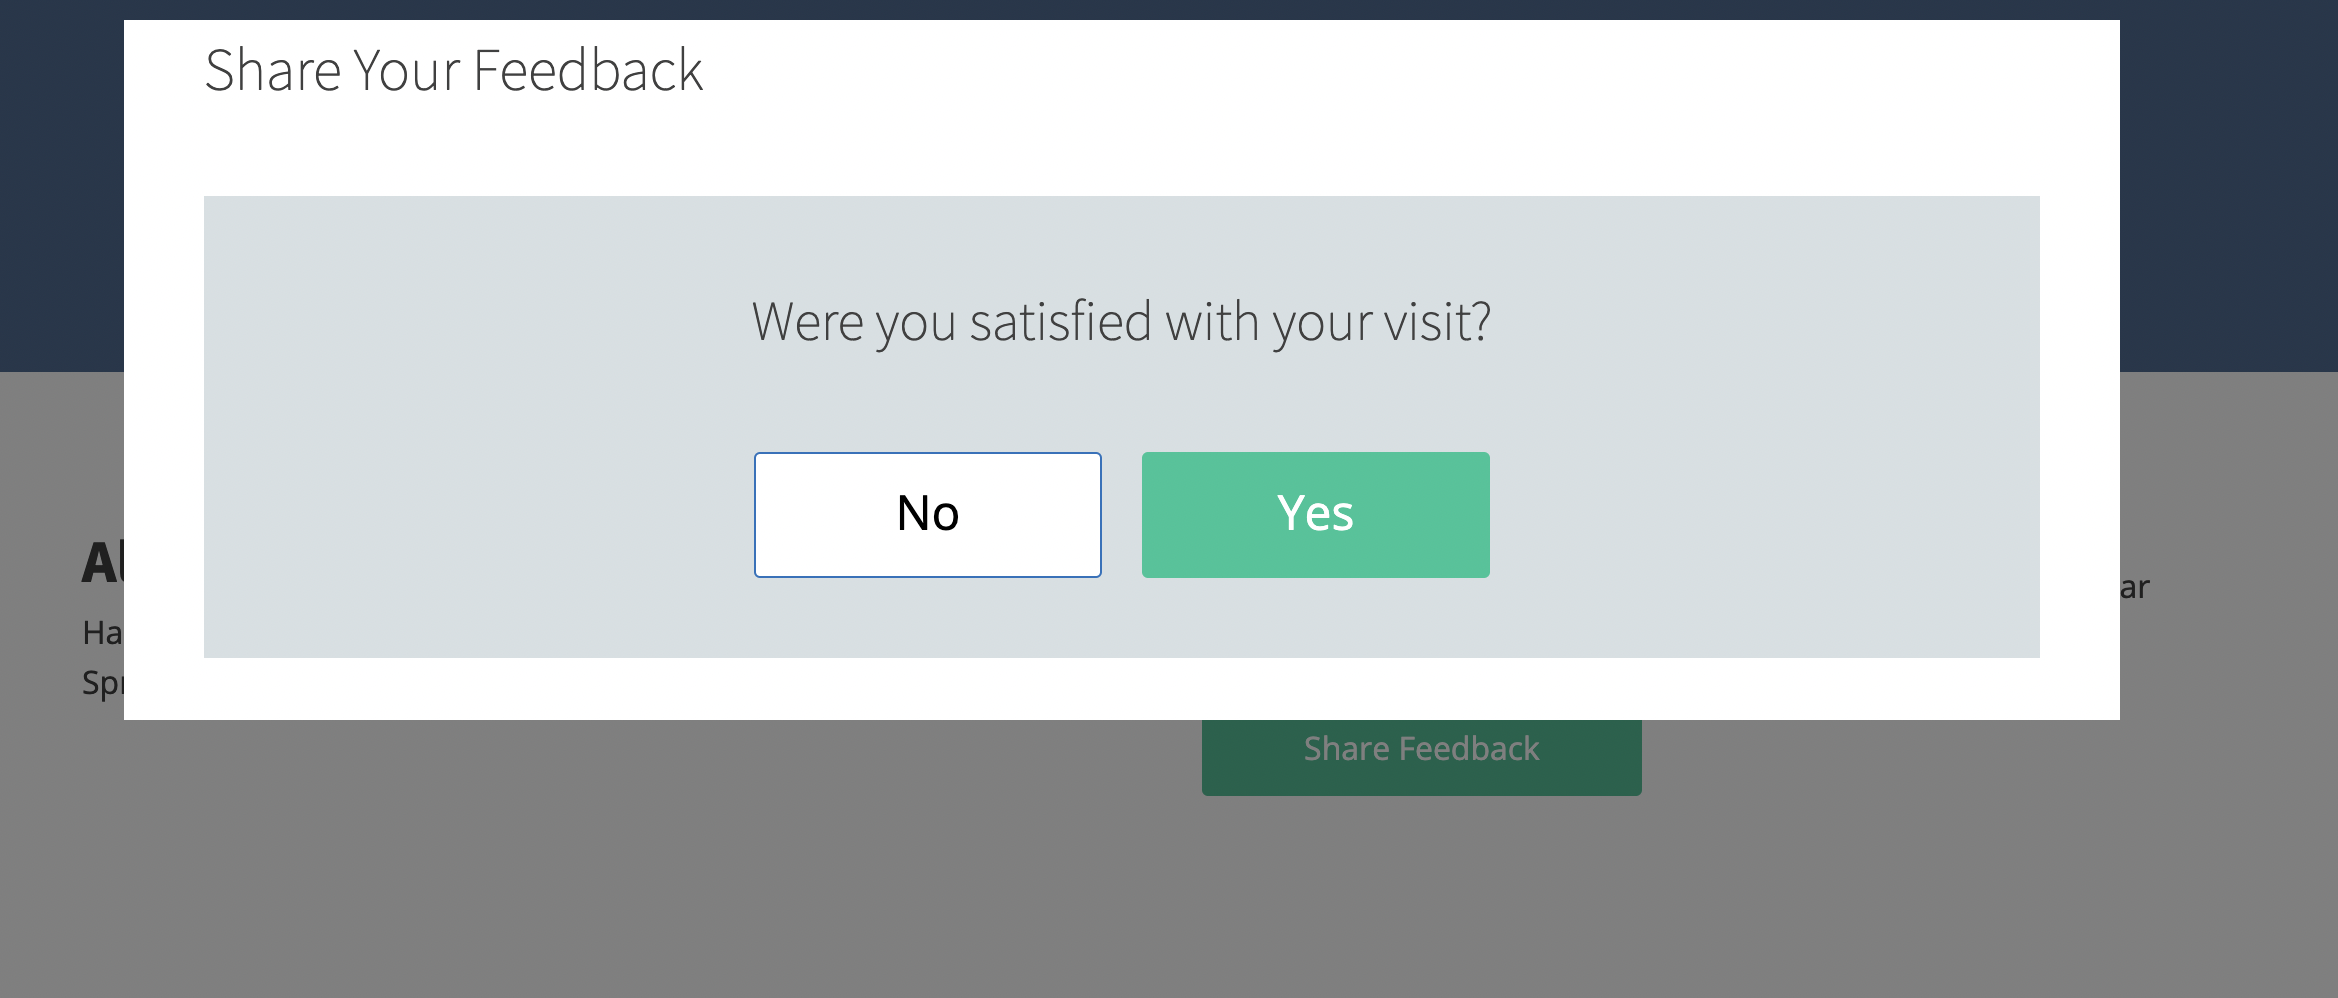 Share Patient Feedback Modal